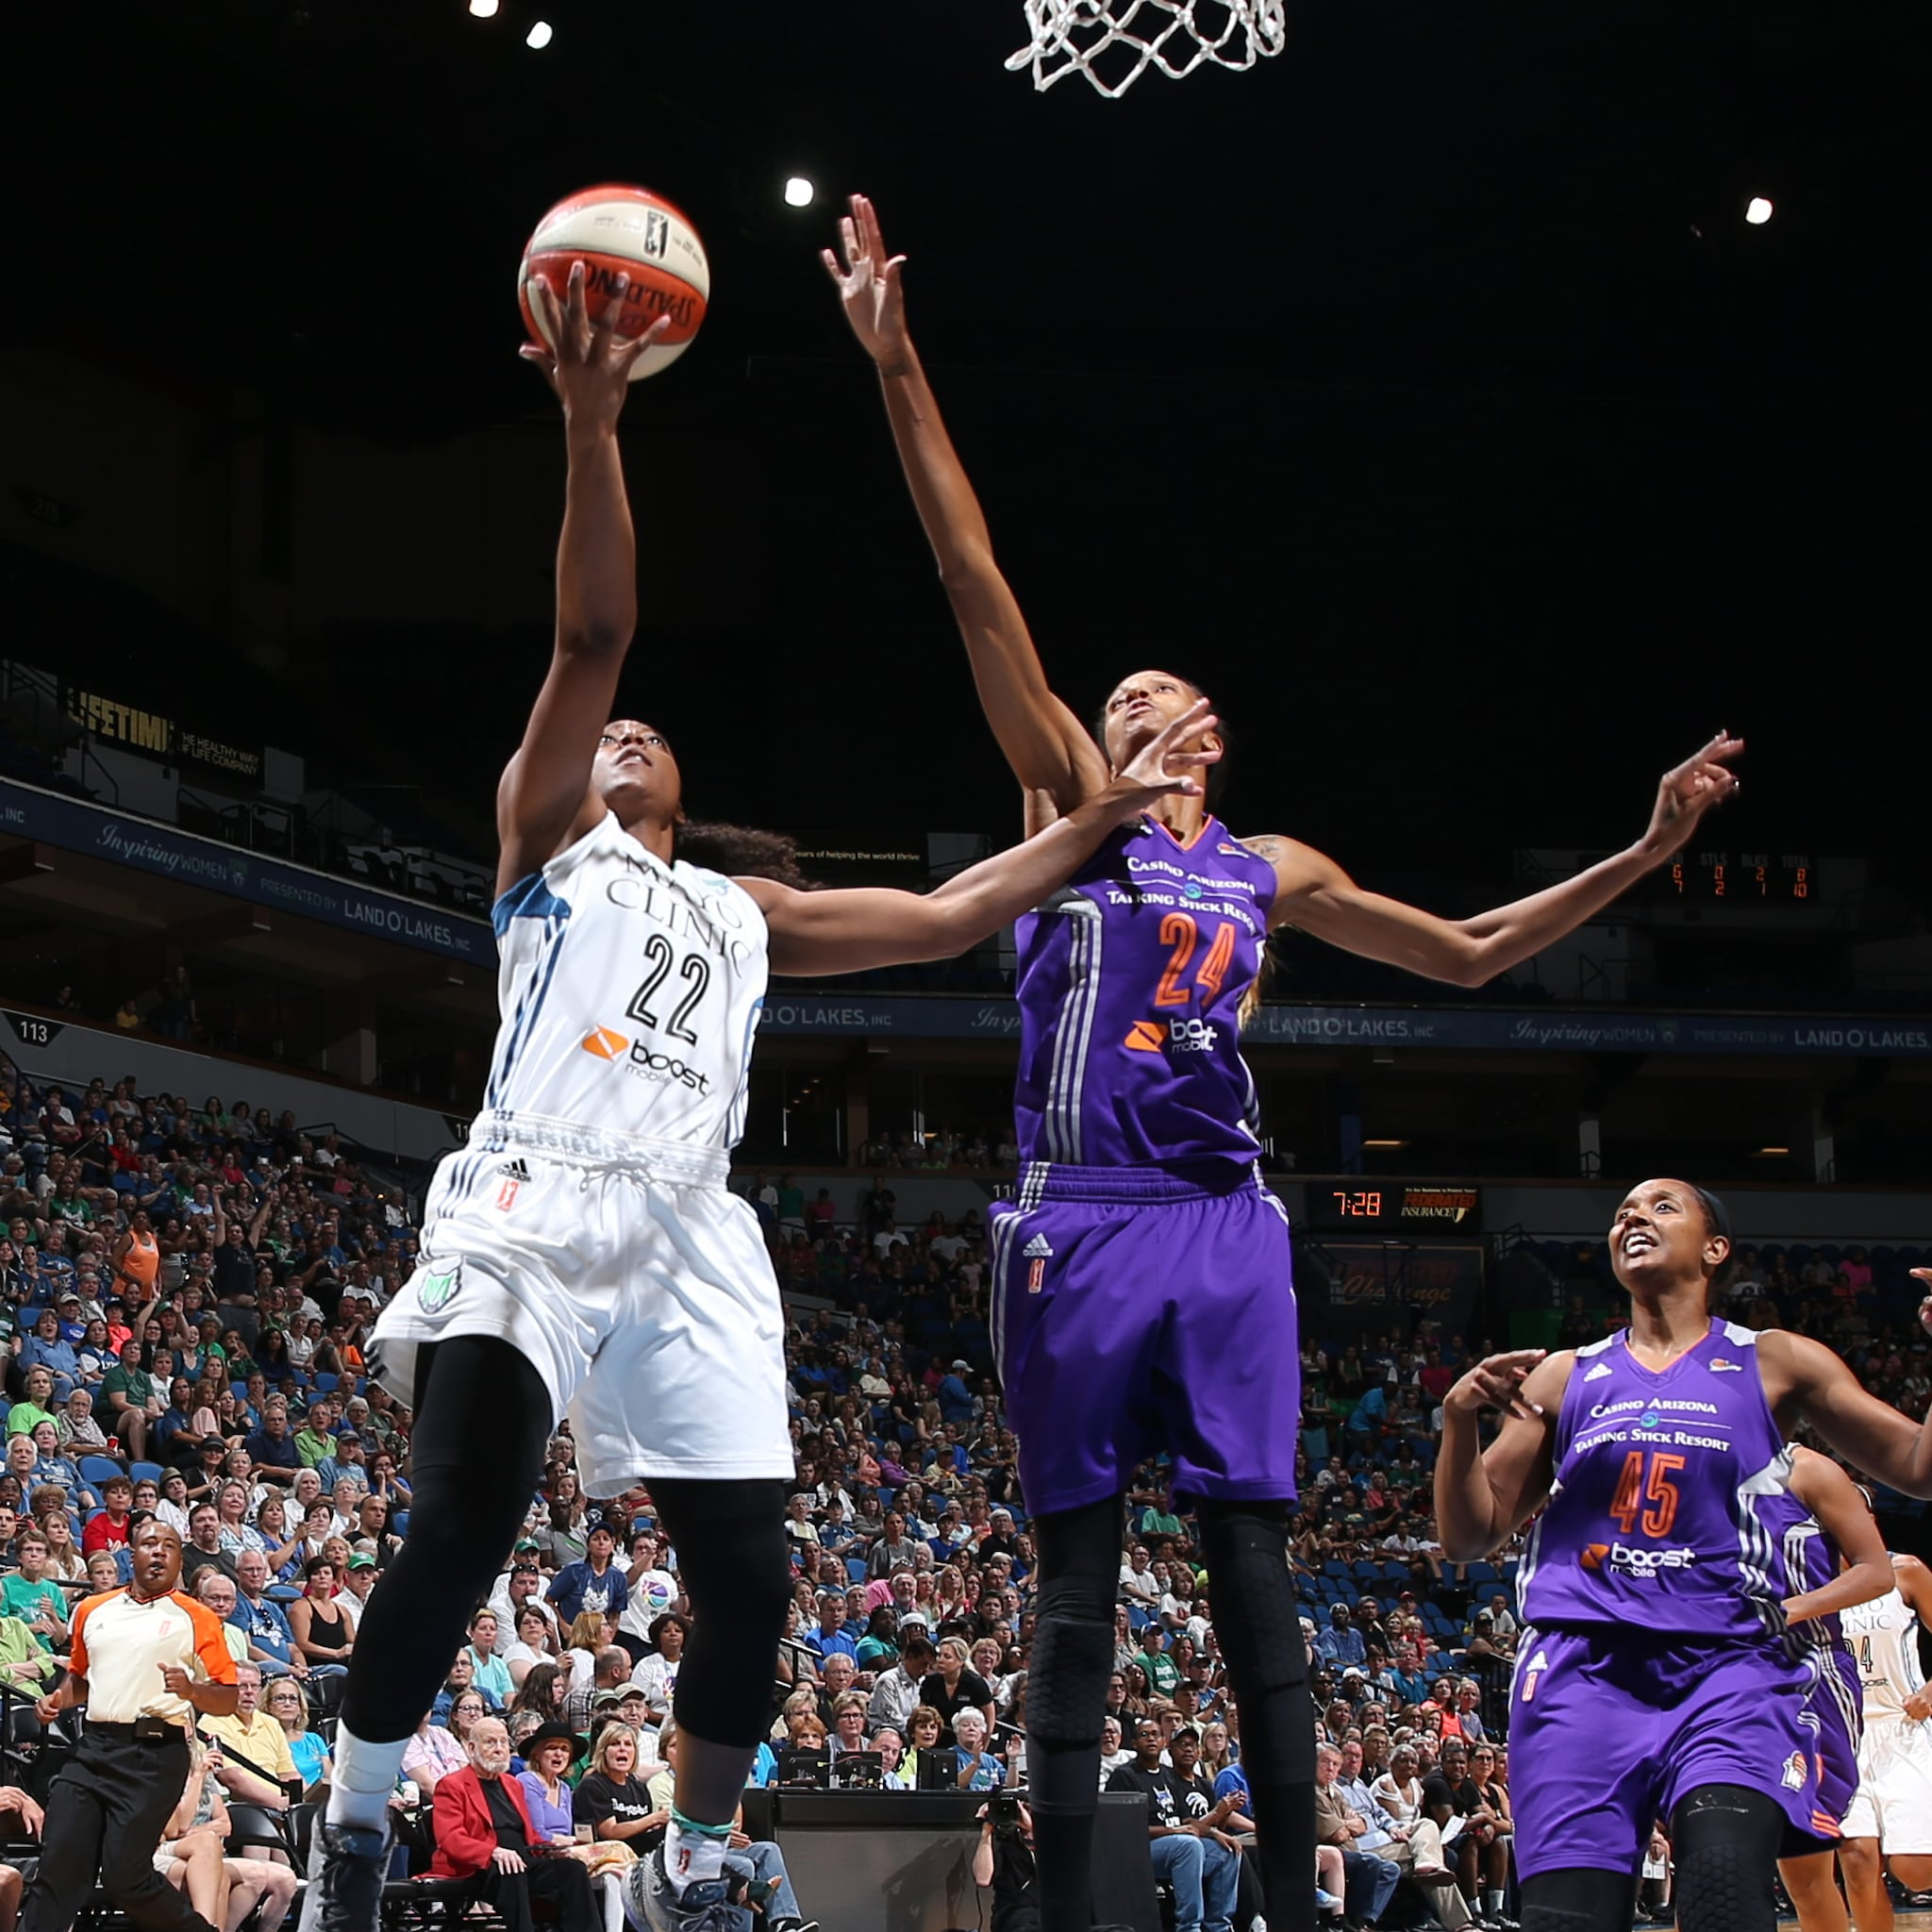 Lynx guard Monica Wright had a quiet game against the Mercury, scoring just two points, grabbing two rebounds and dishing two assists in just 16 minutes of playing time.